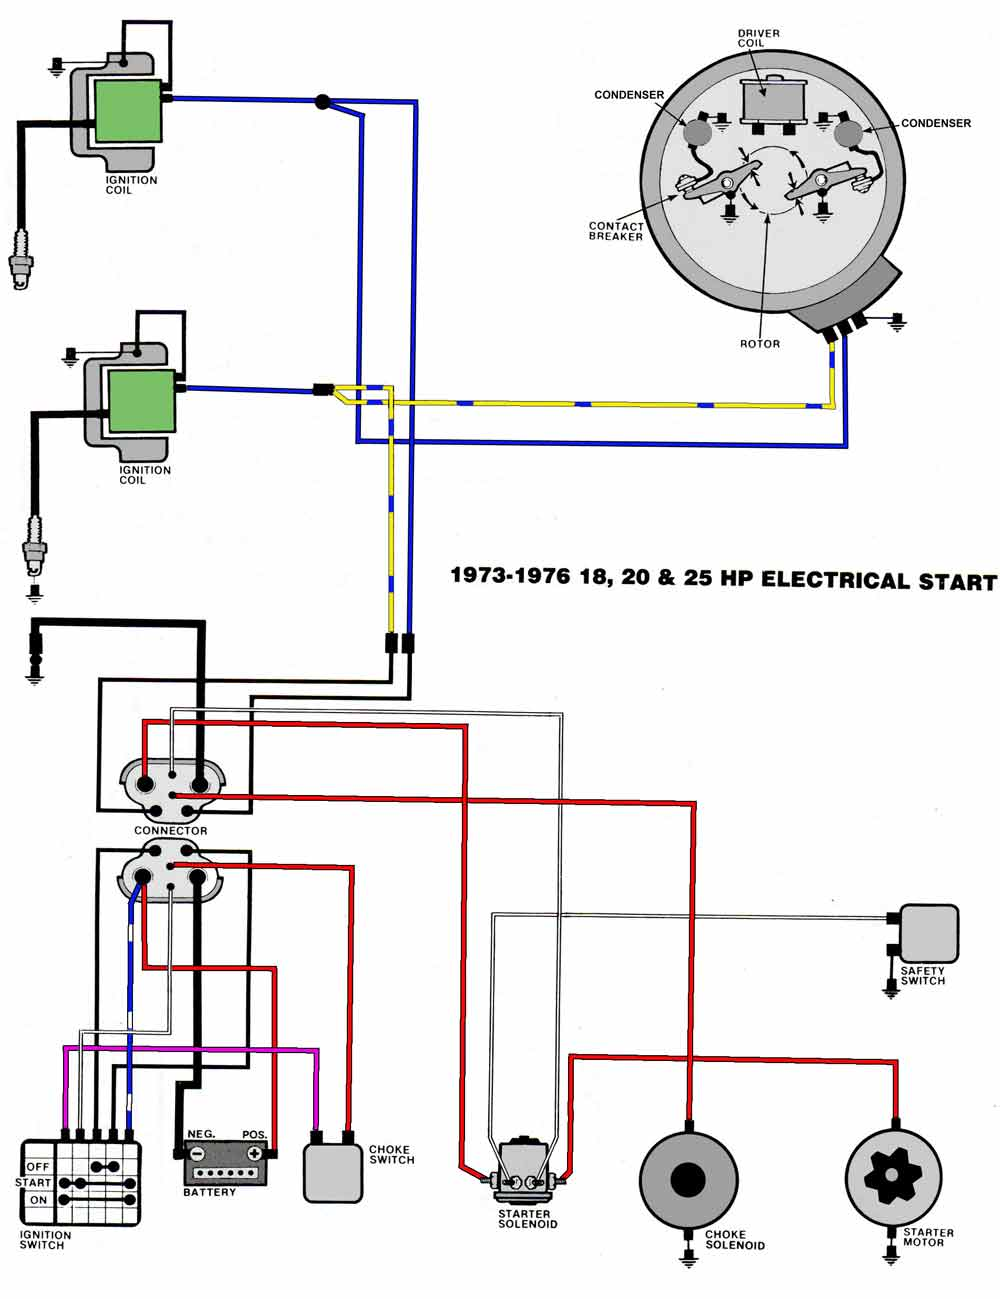 1973 76_18 25 mastertech marine evinrude johnson outboard wiring diagrams  at nearapp.co